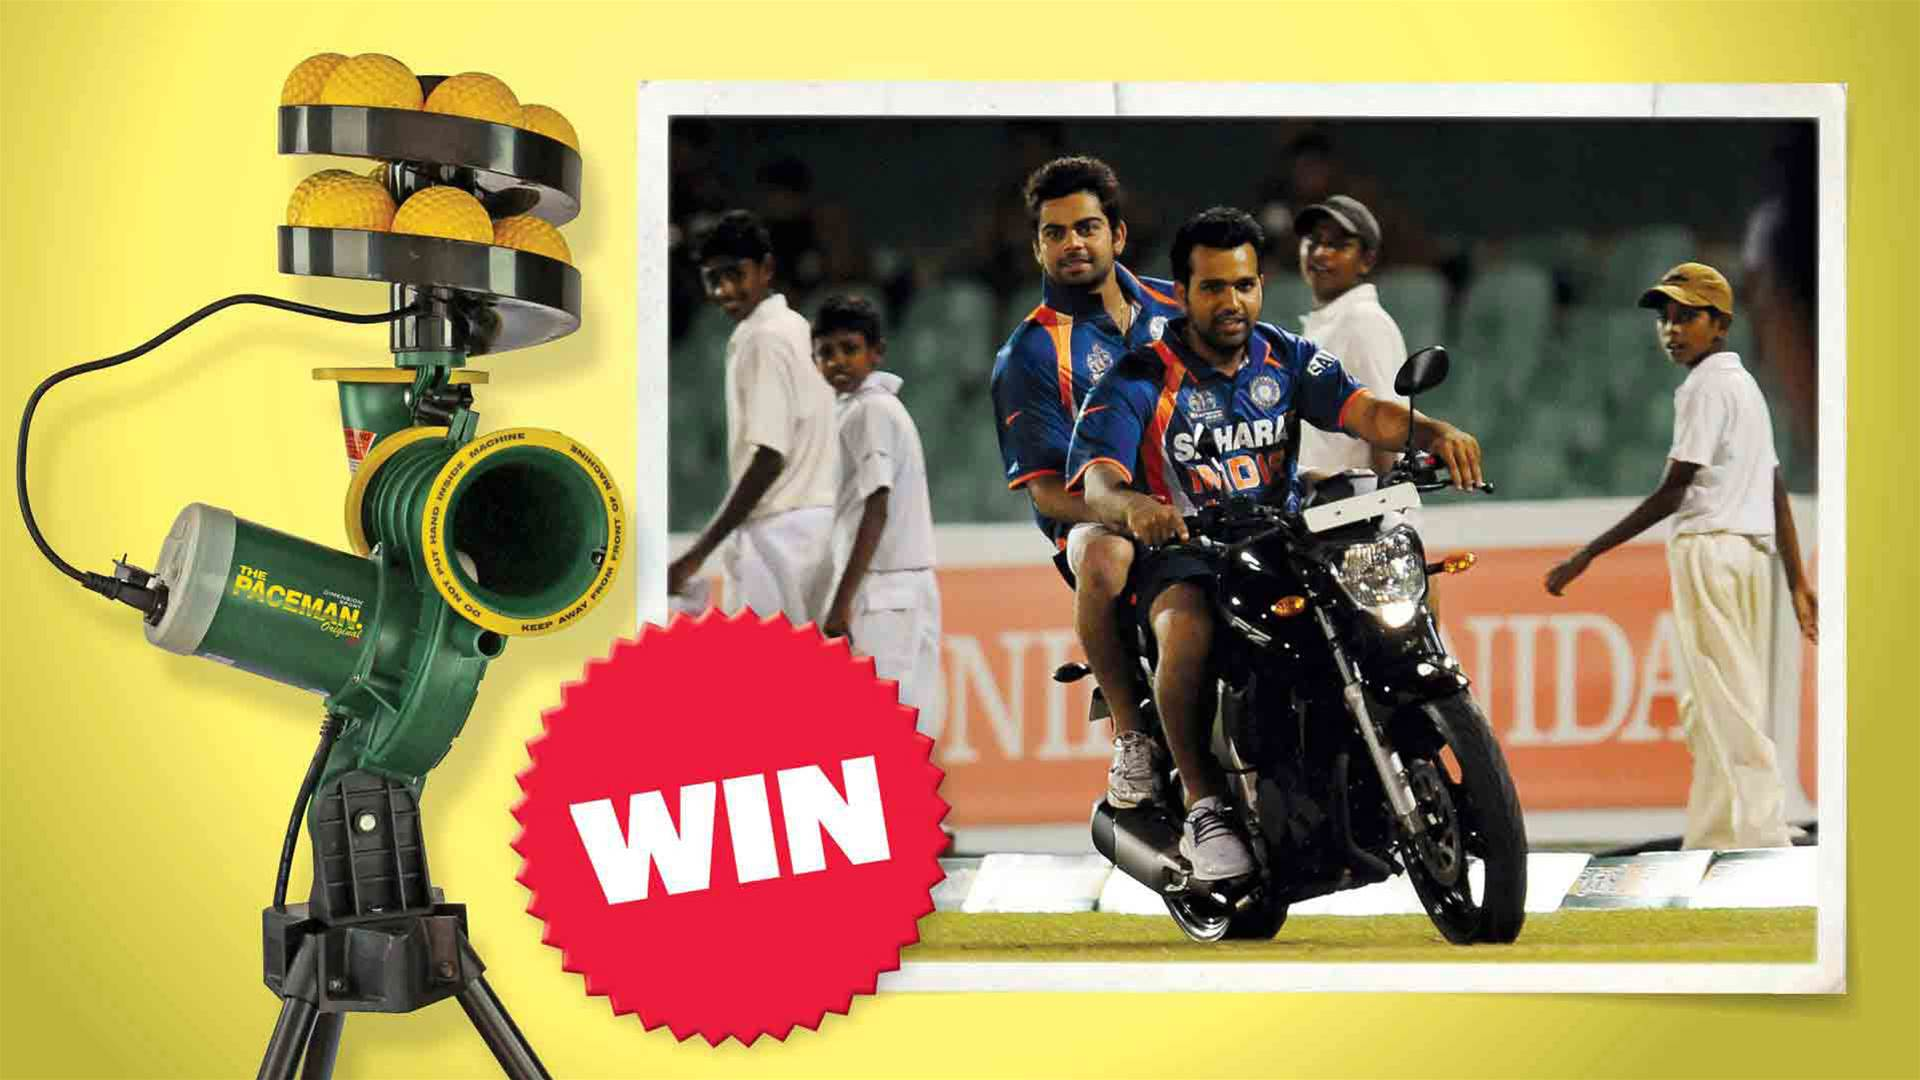 Win a paceman bowling machine!